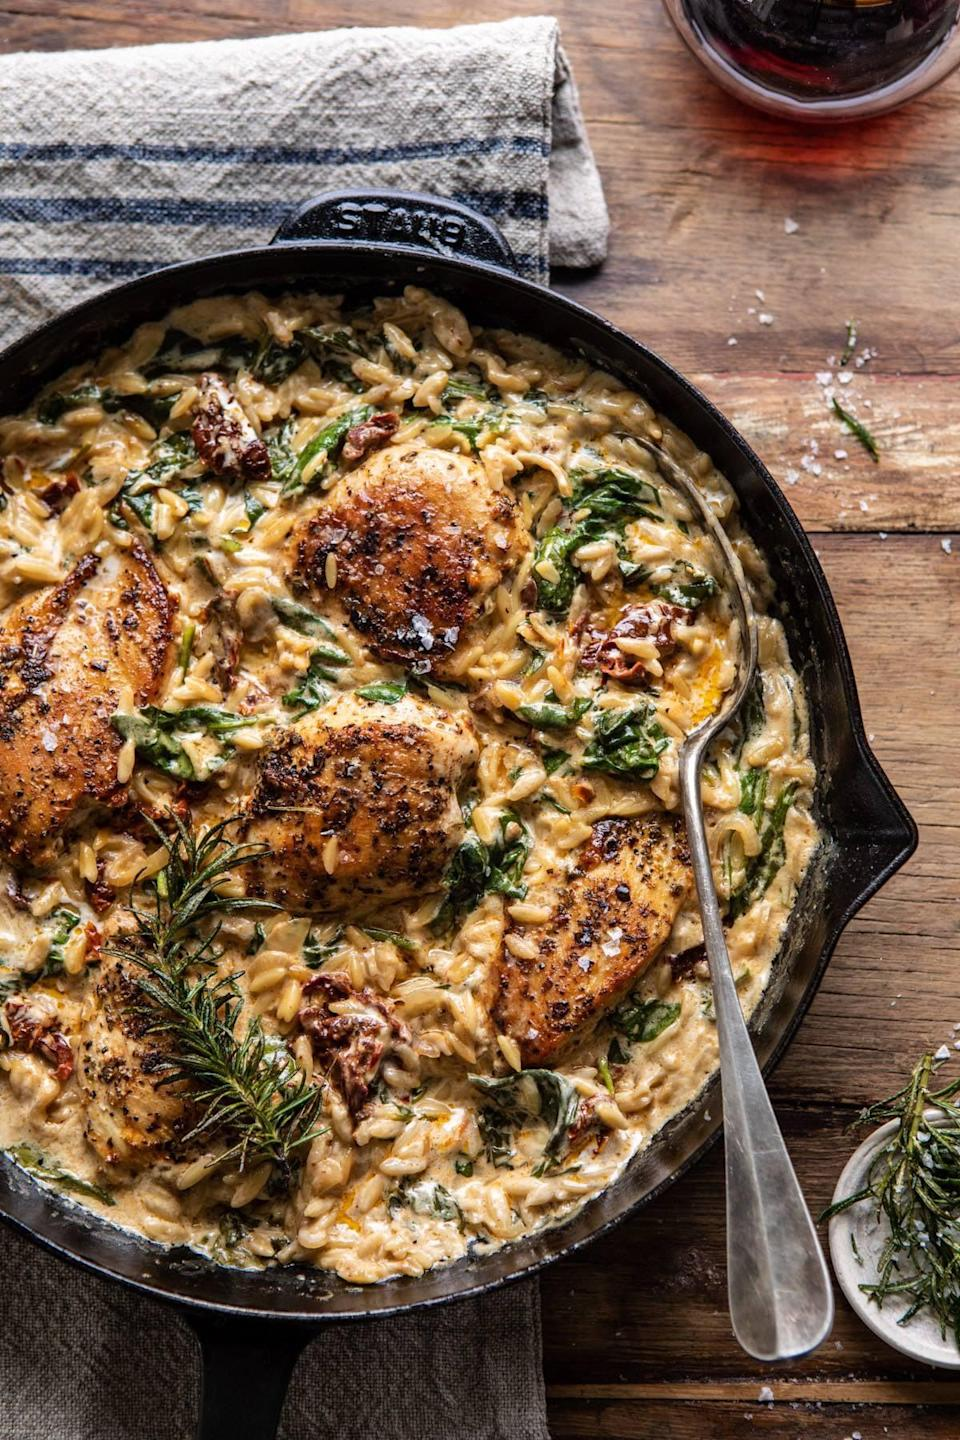 "<p>Quick, easy, and filling, this creamy chicken and orzo dish will be a fan favorite in no time. With pan-seared Italian seasoned chicken breasts that are cooked in a creamy sun-dried tomato and spinach sauce, you'll be inclined to lick your plate to make sure you get every last bite.</p> <p><strong>Get the recipe</strong>: <a href=""https://www.halfbakedharvest.com/one-skillet-creamy-sun-dried-tomato-chicken-and-orzo/"" class=""link rapid-noclick-resp"" rel=""nofollow noopener"" target=""_blank"" data-ylk=""slk:one skillet creamy sun-dried tomato chicken and orzo"">one skillet creamy sun-dried tomato chicken and orzo</a></p>"